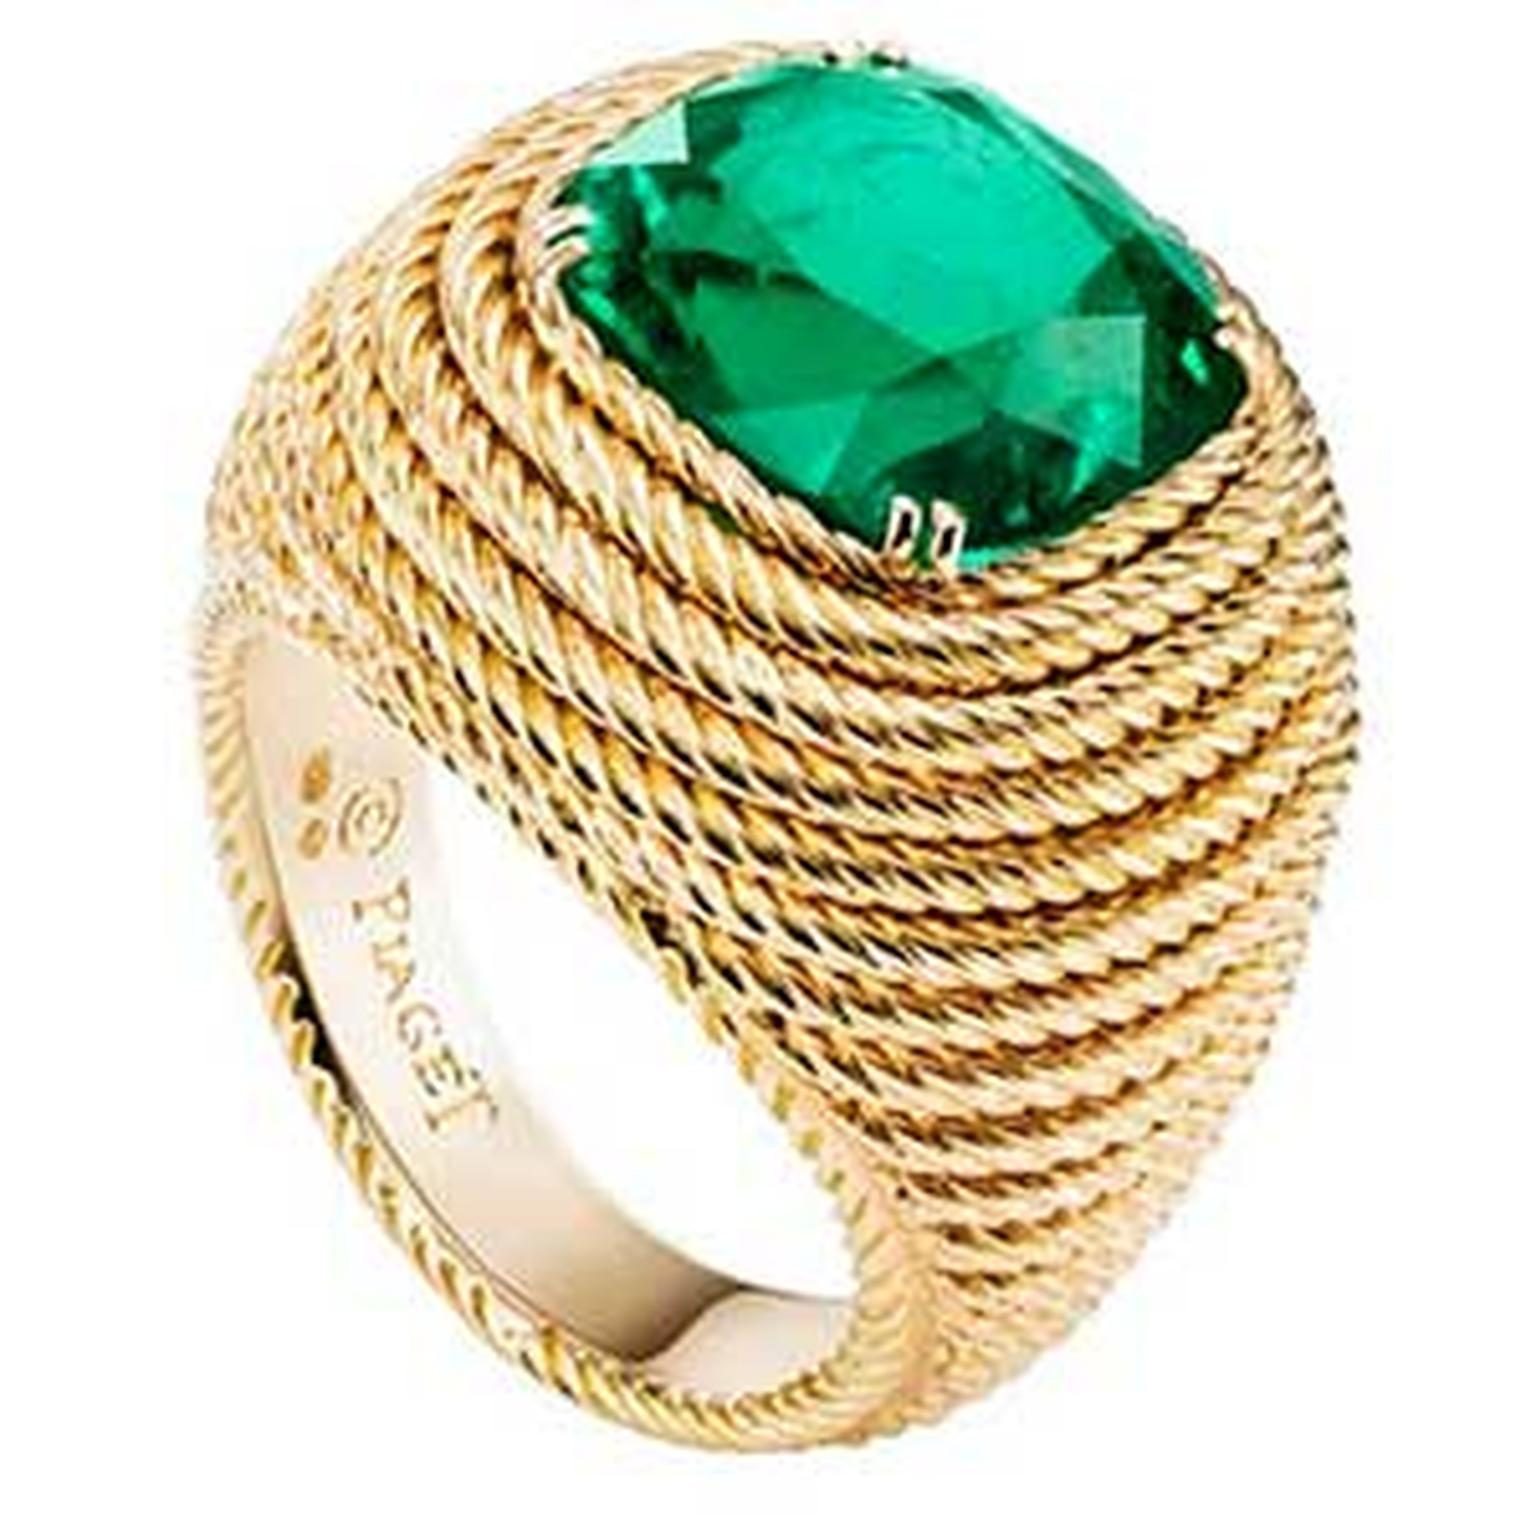 Piaget emerald ring